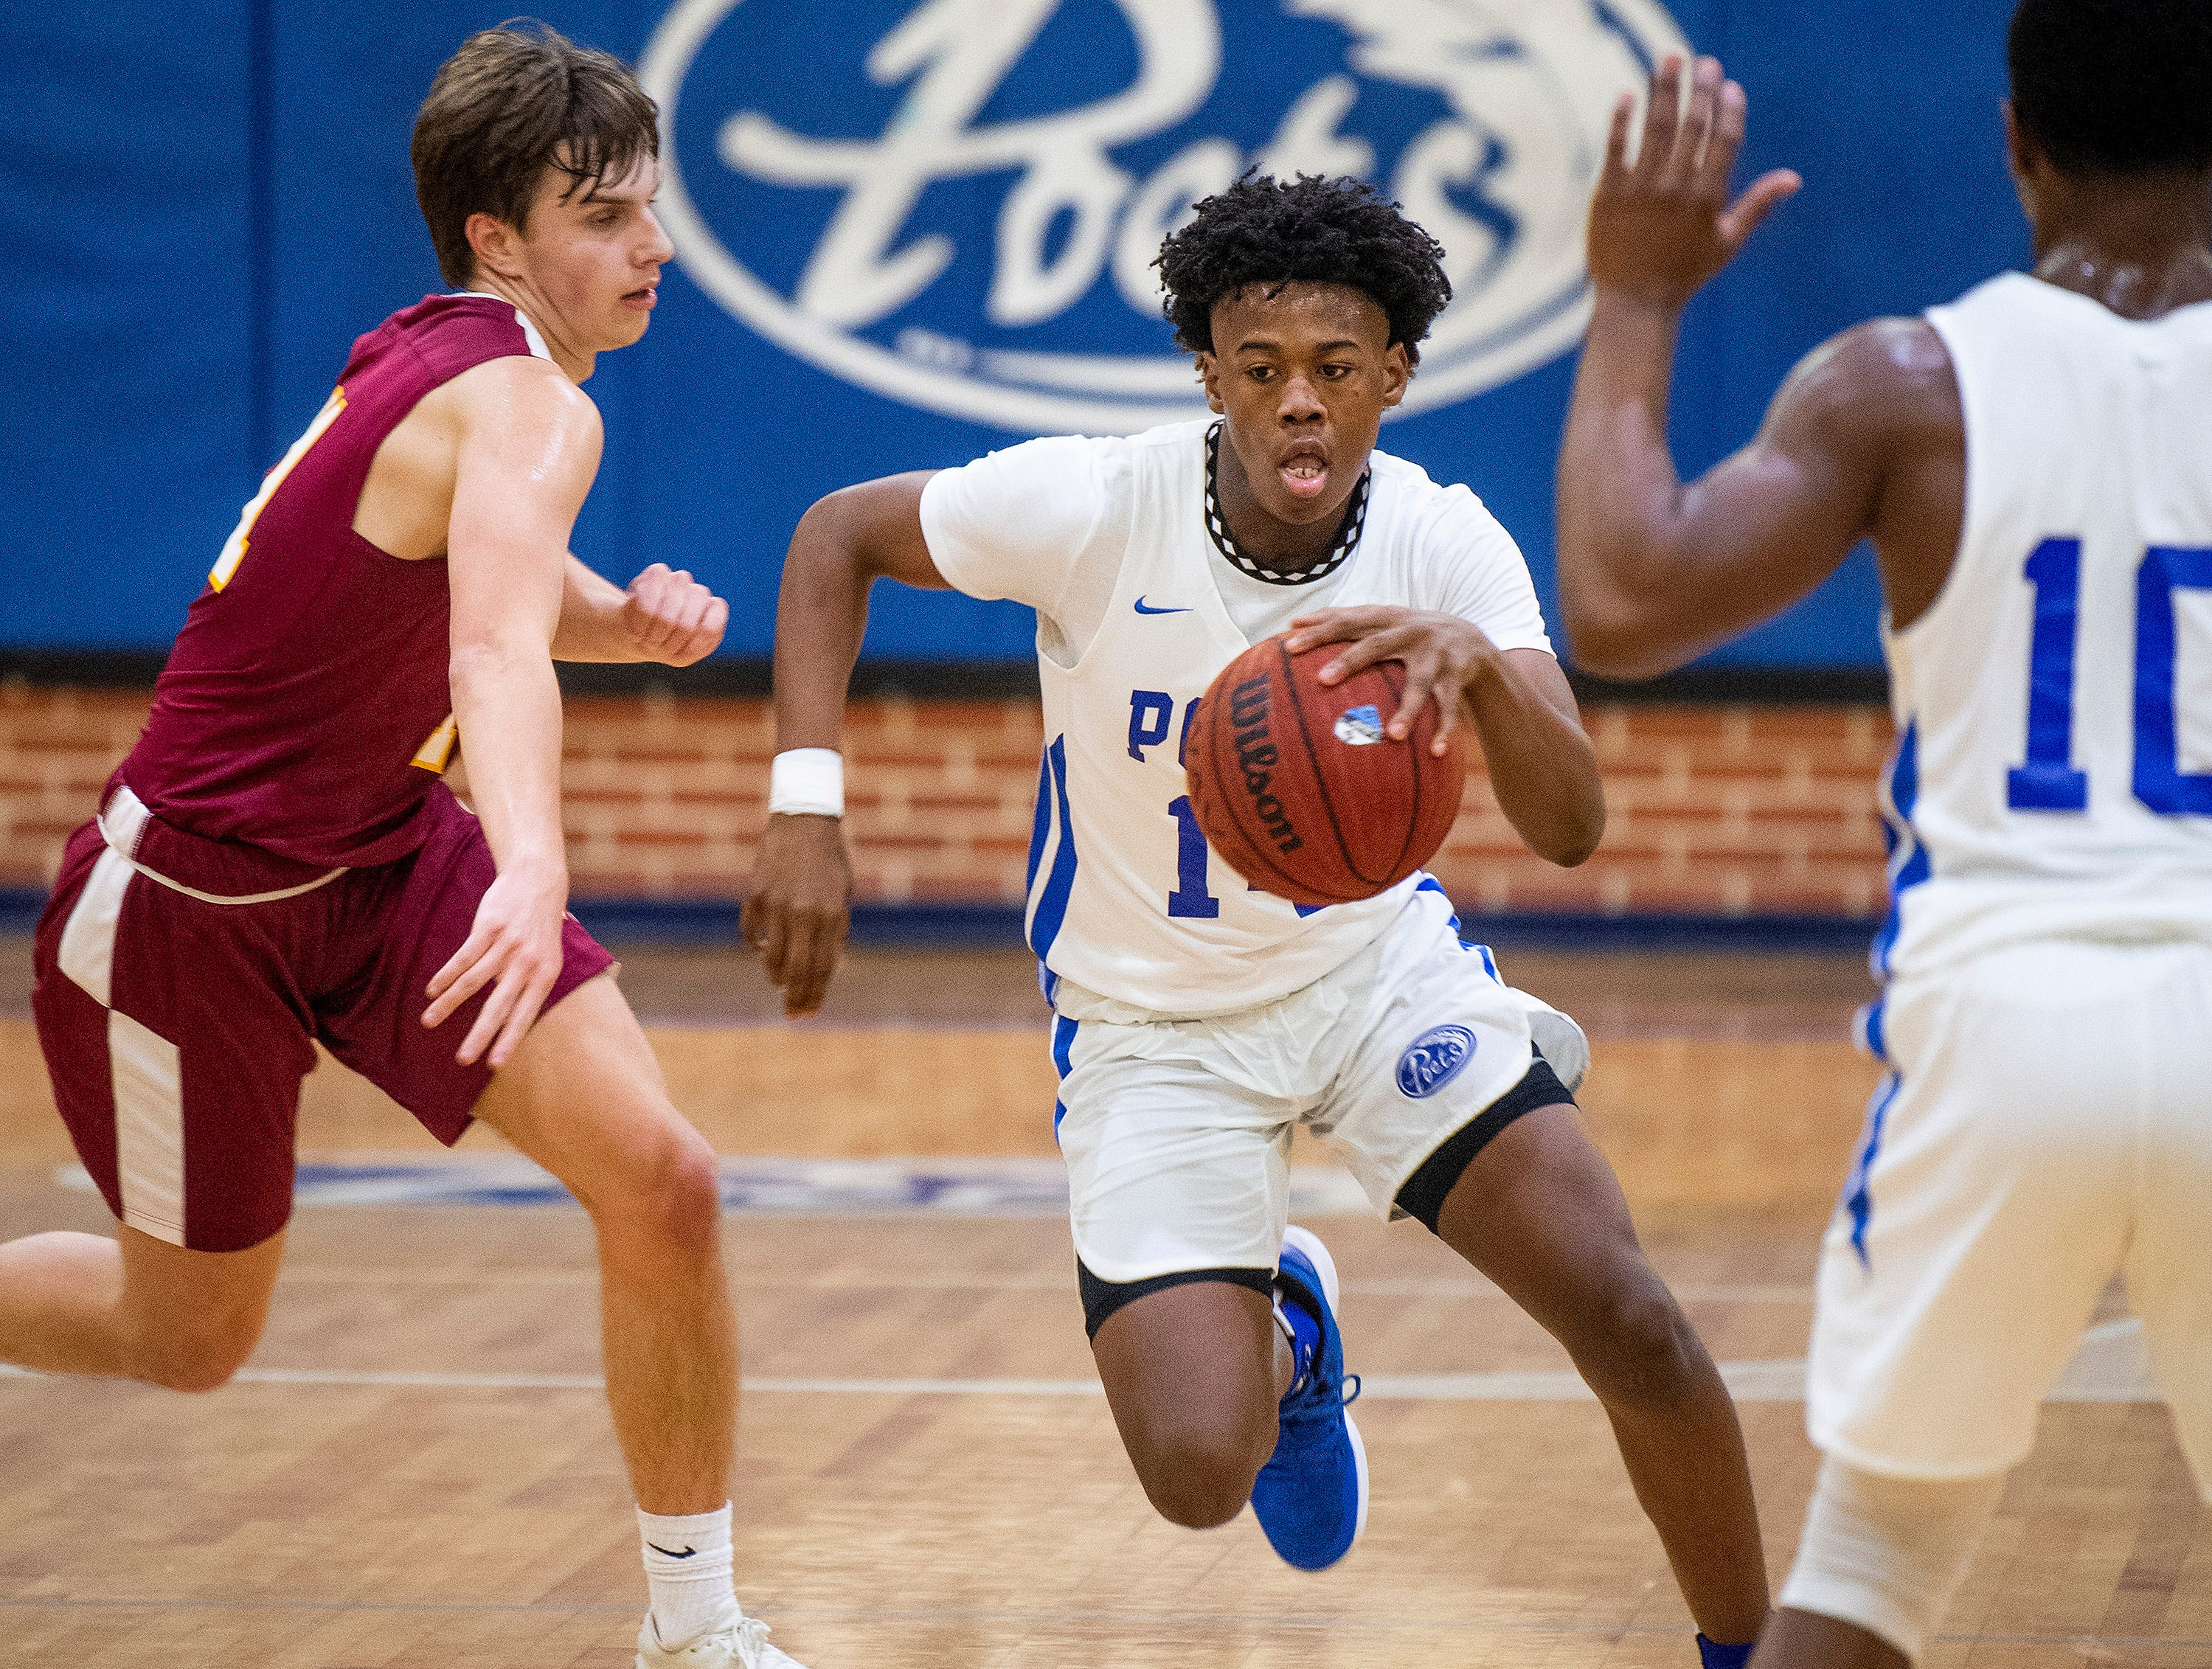 Lanier's Elijah White (14) against Northview at the Lanier campus in Montgomery, Ala., on Tuesday February 12, 2019.